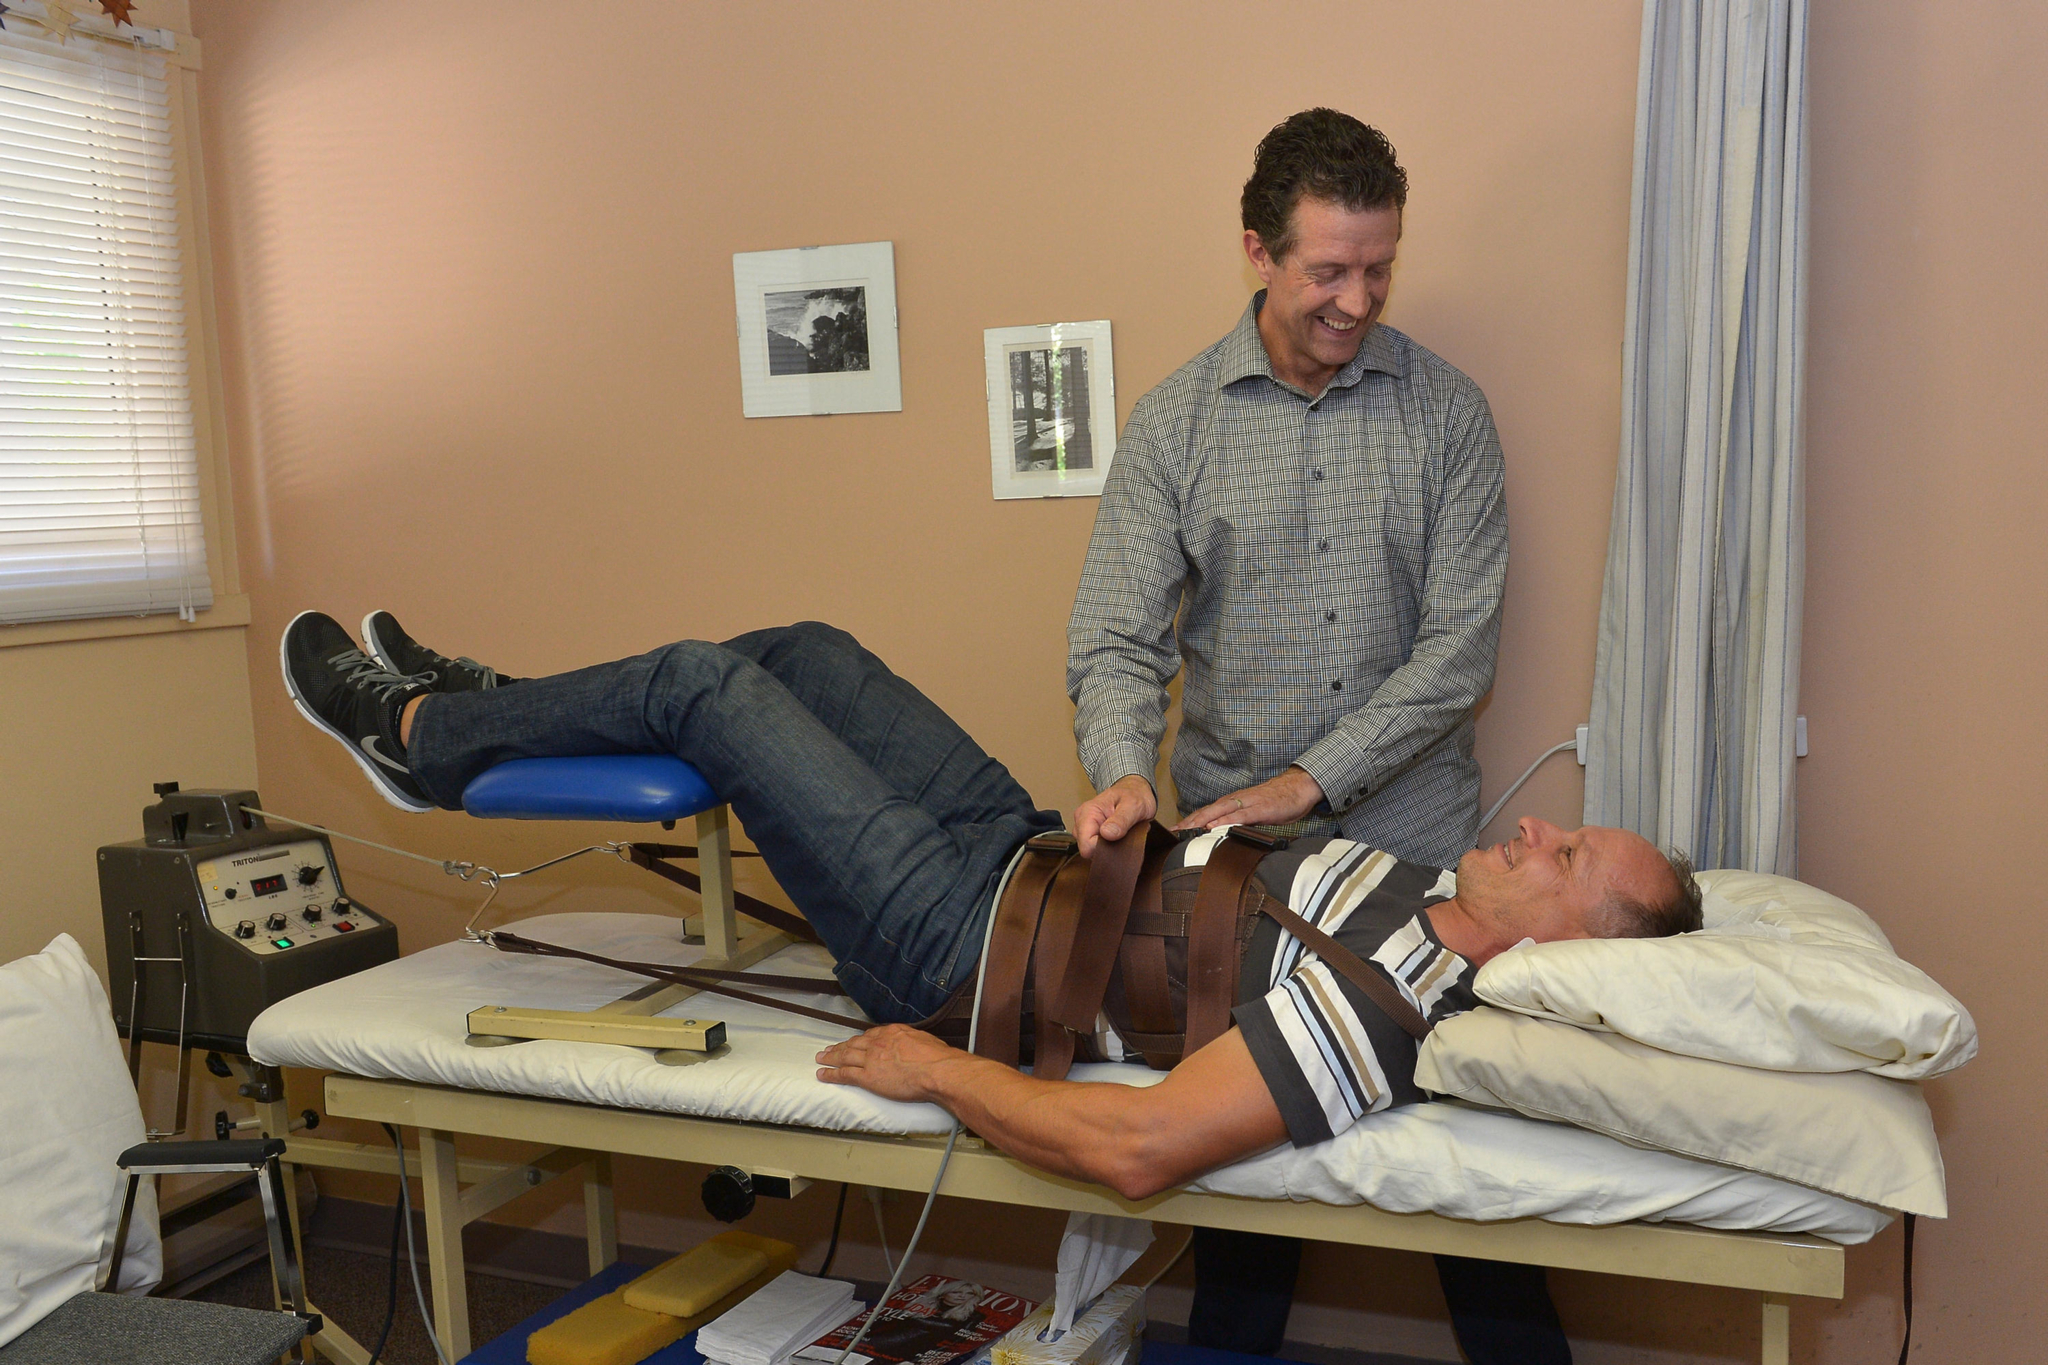 Town & Country Physiotherapy in Victoria